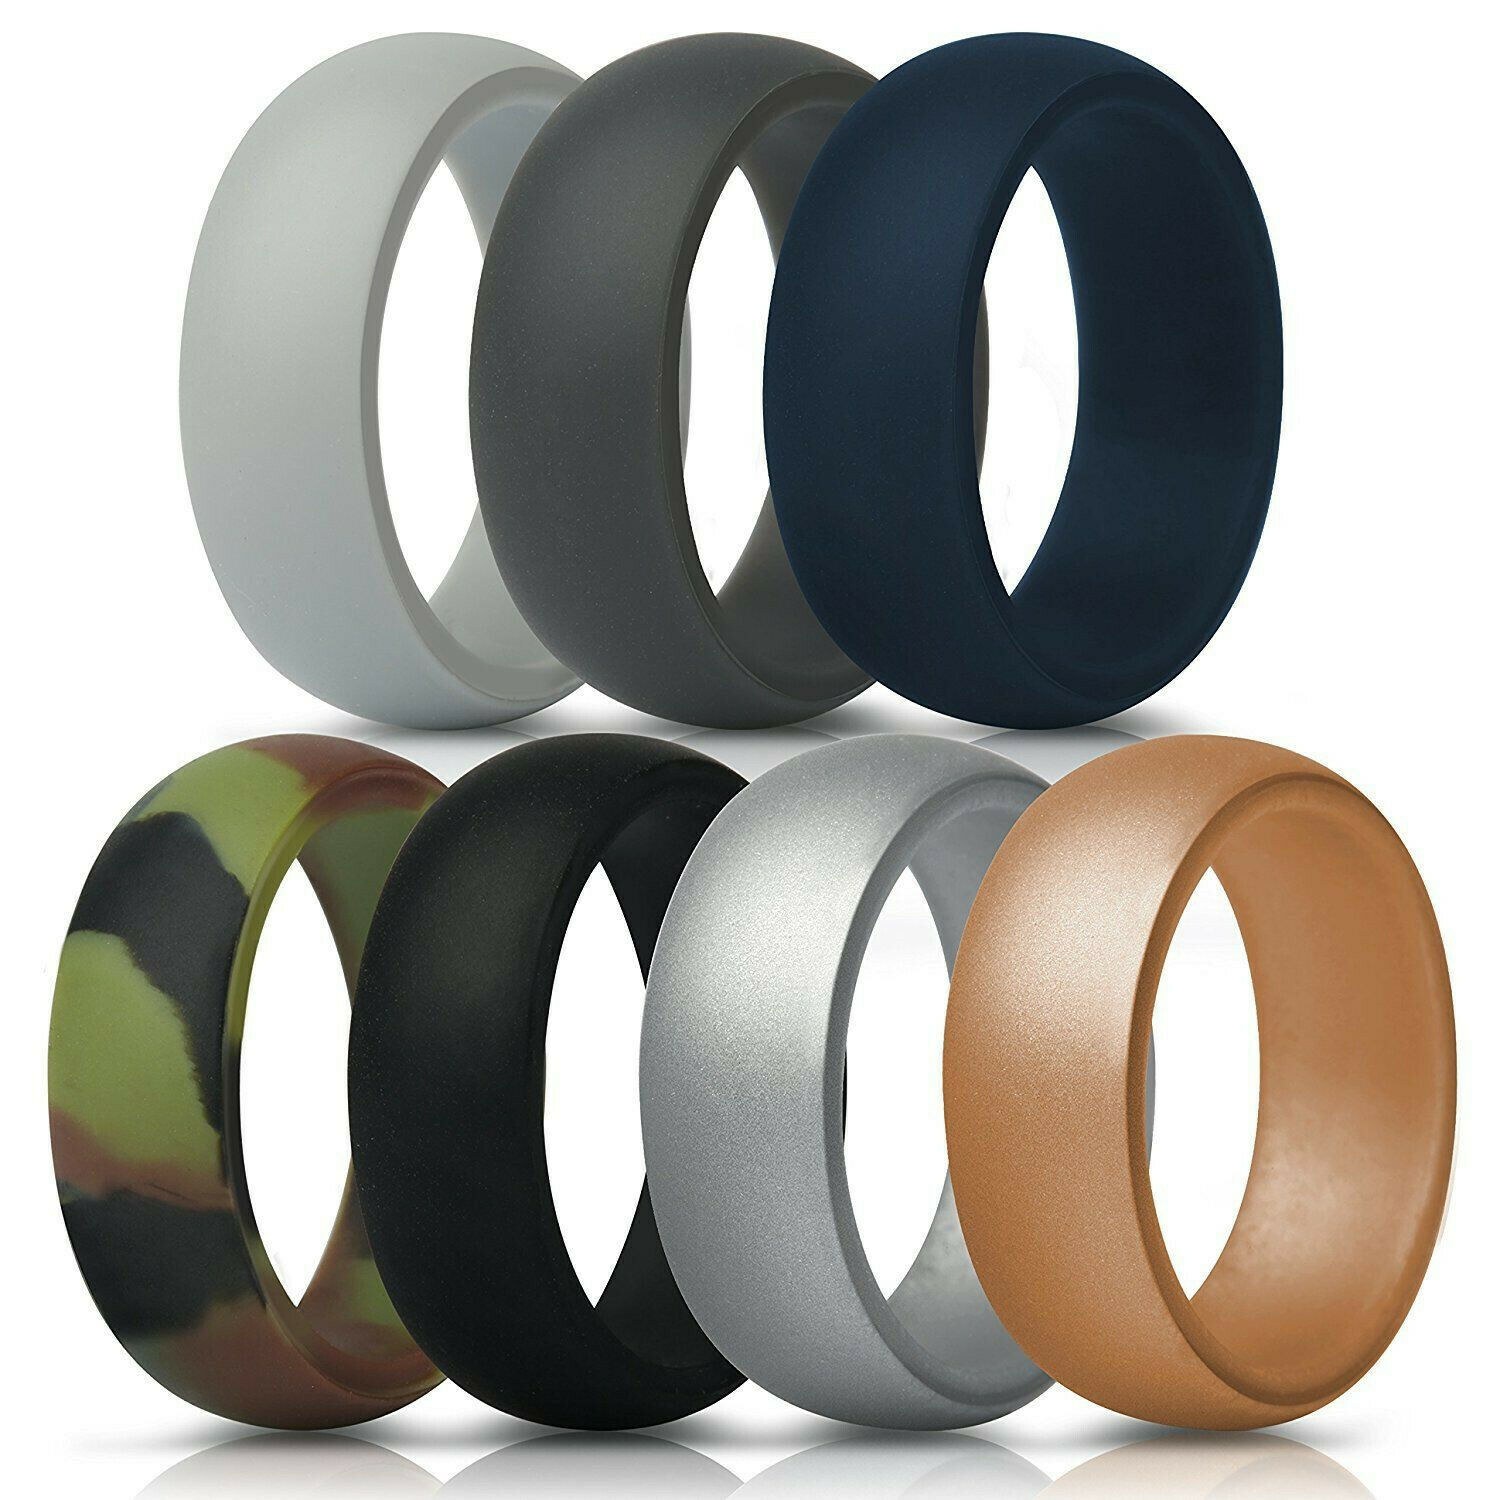 new silicone rings men s 7 pack